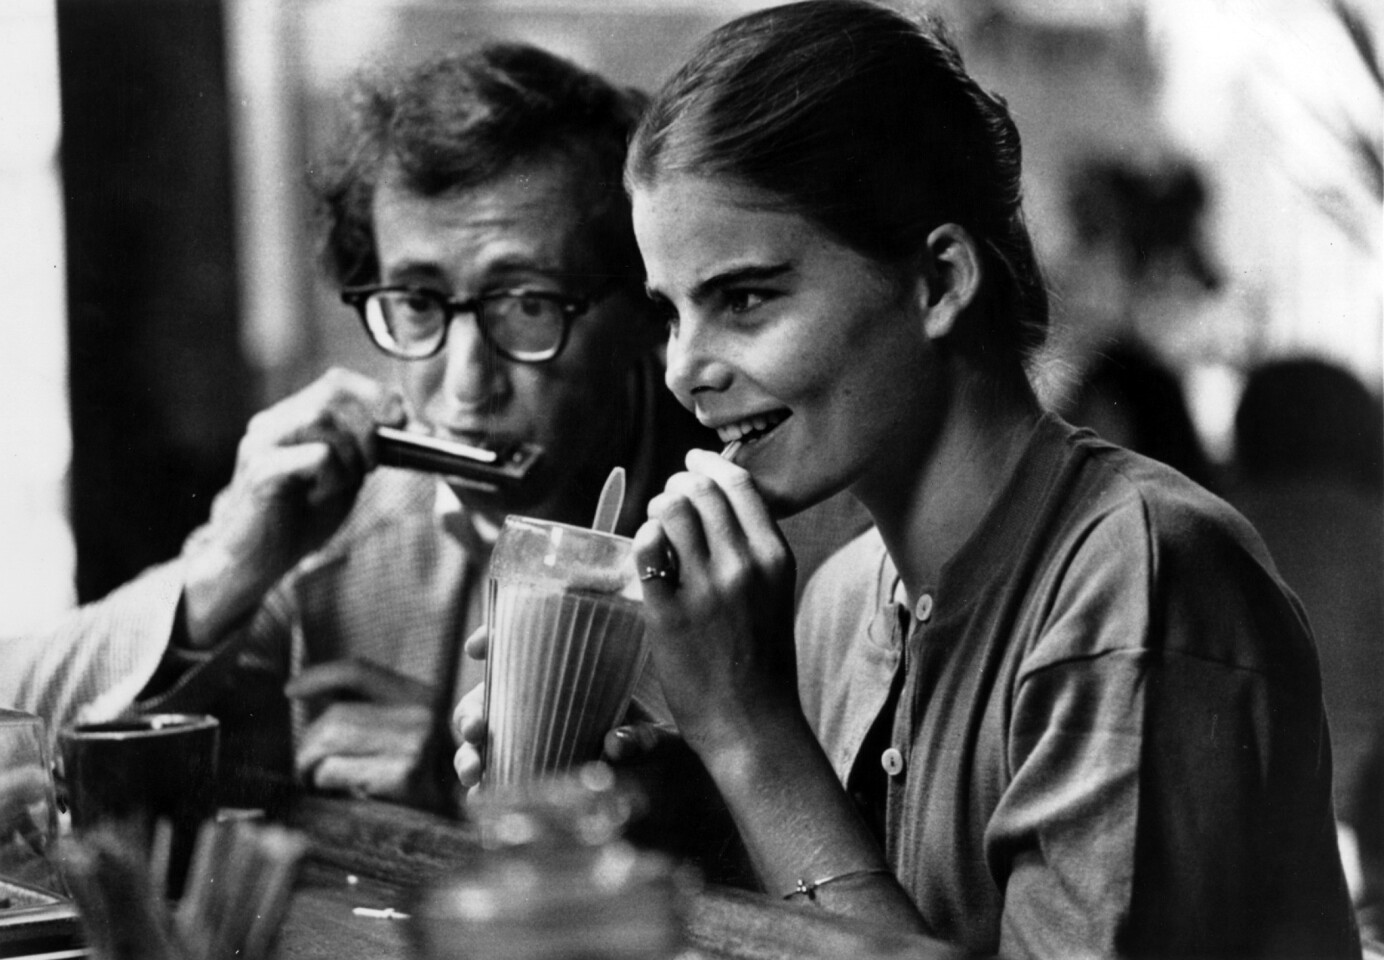 "Woody Allen decided to make his comedic romance in black-and-white, showcasing the love his divorced forty-something comedy writer had for the 17-year-old Mariel Hemingway character in stark, stylized black-and-white. And really, would the montage of New York scenes over George Gershwin's ""Rhapsody in Blue"" have been the same without it?"